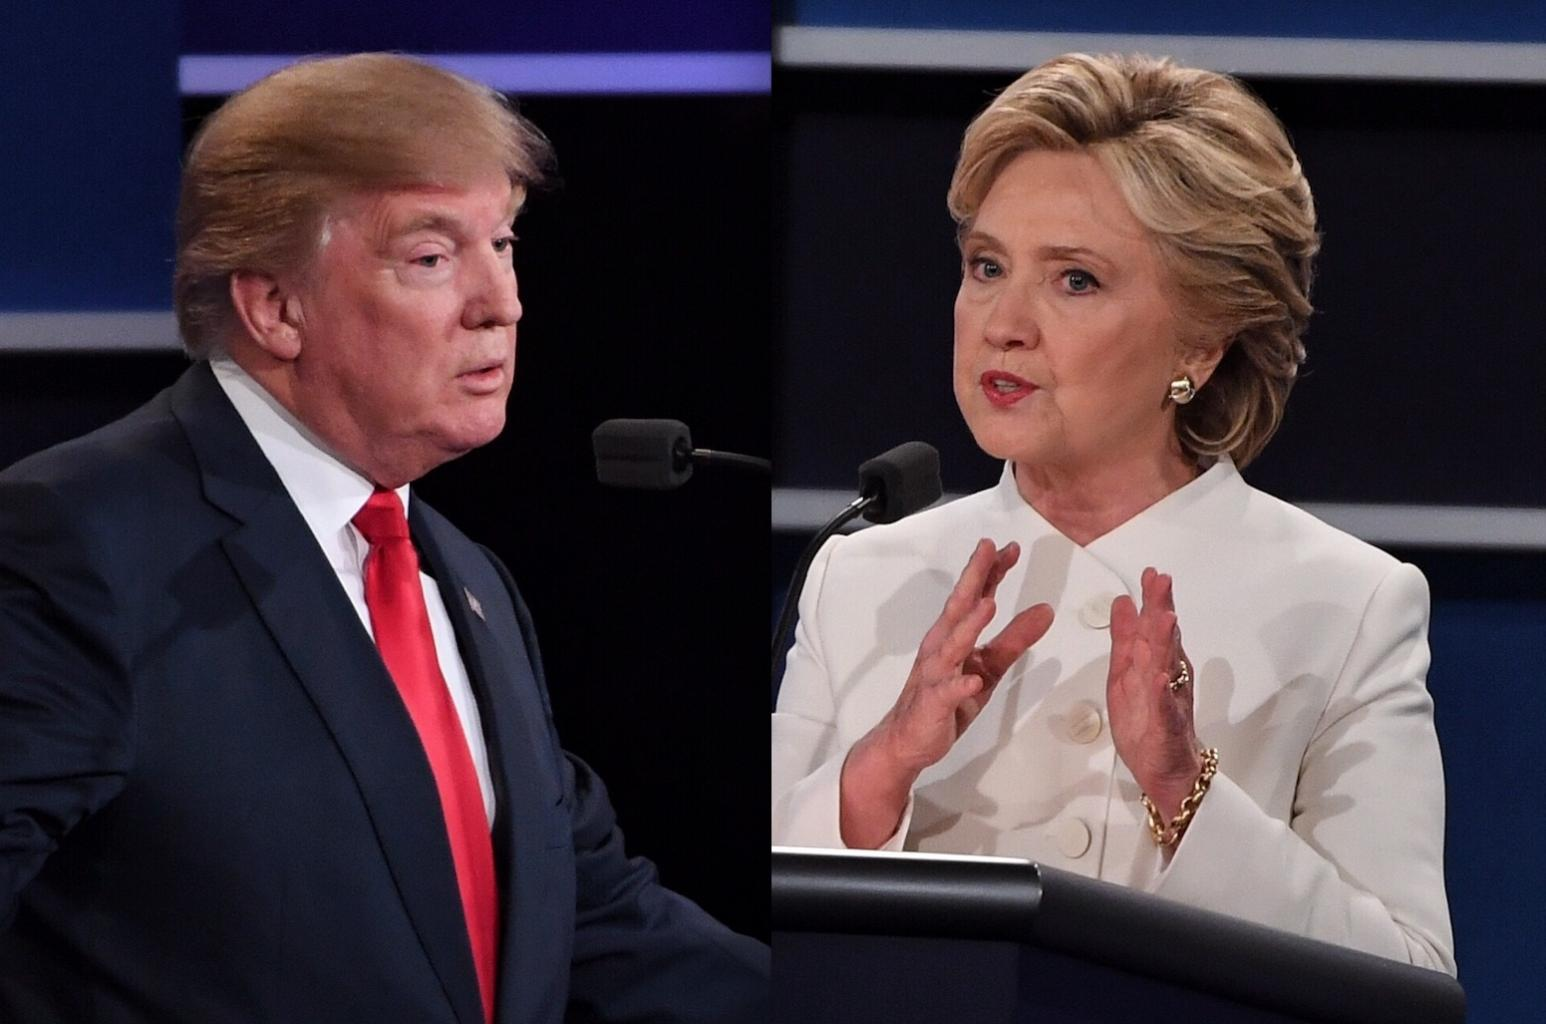 Celebs Take To Twitter To Respond To Final Presidential Debate, Mock Trump's 'Hombres', 'Nasty Woman' Remarks